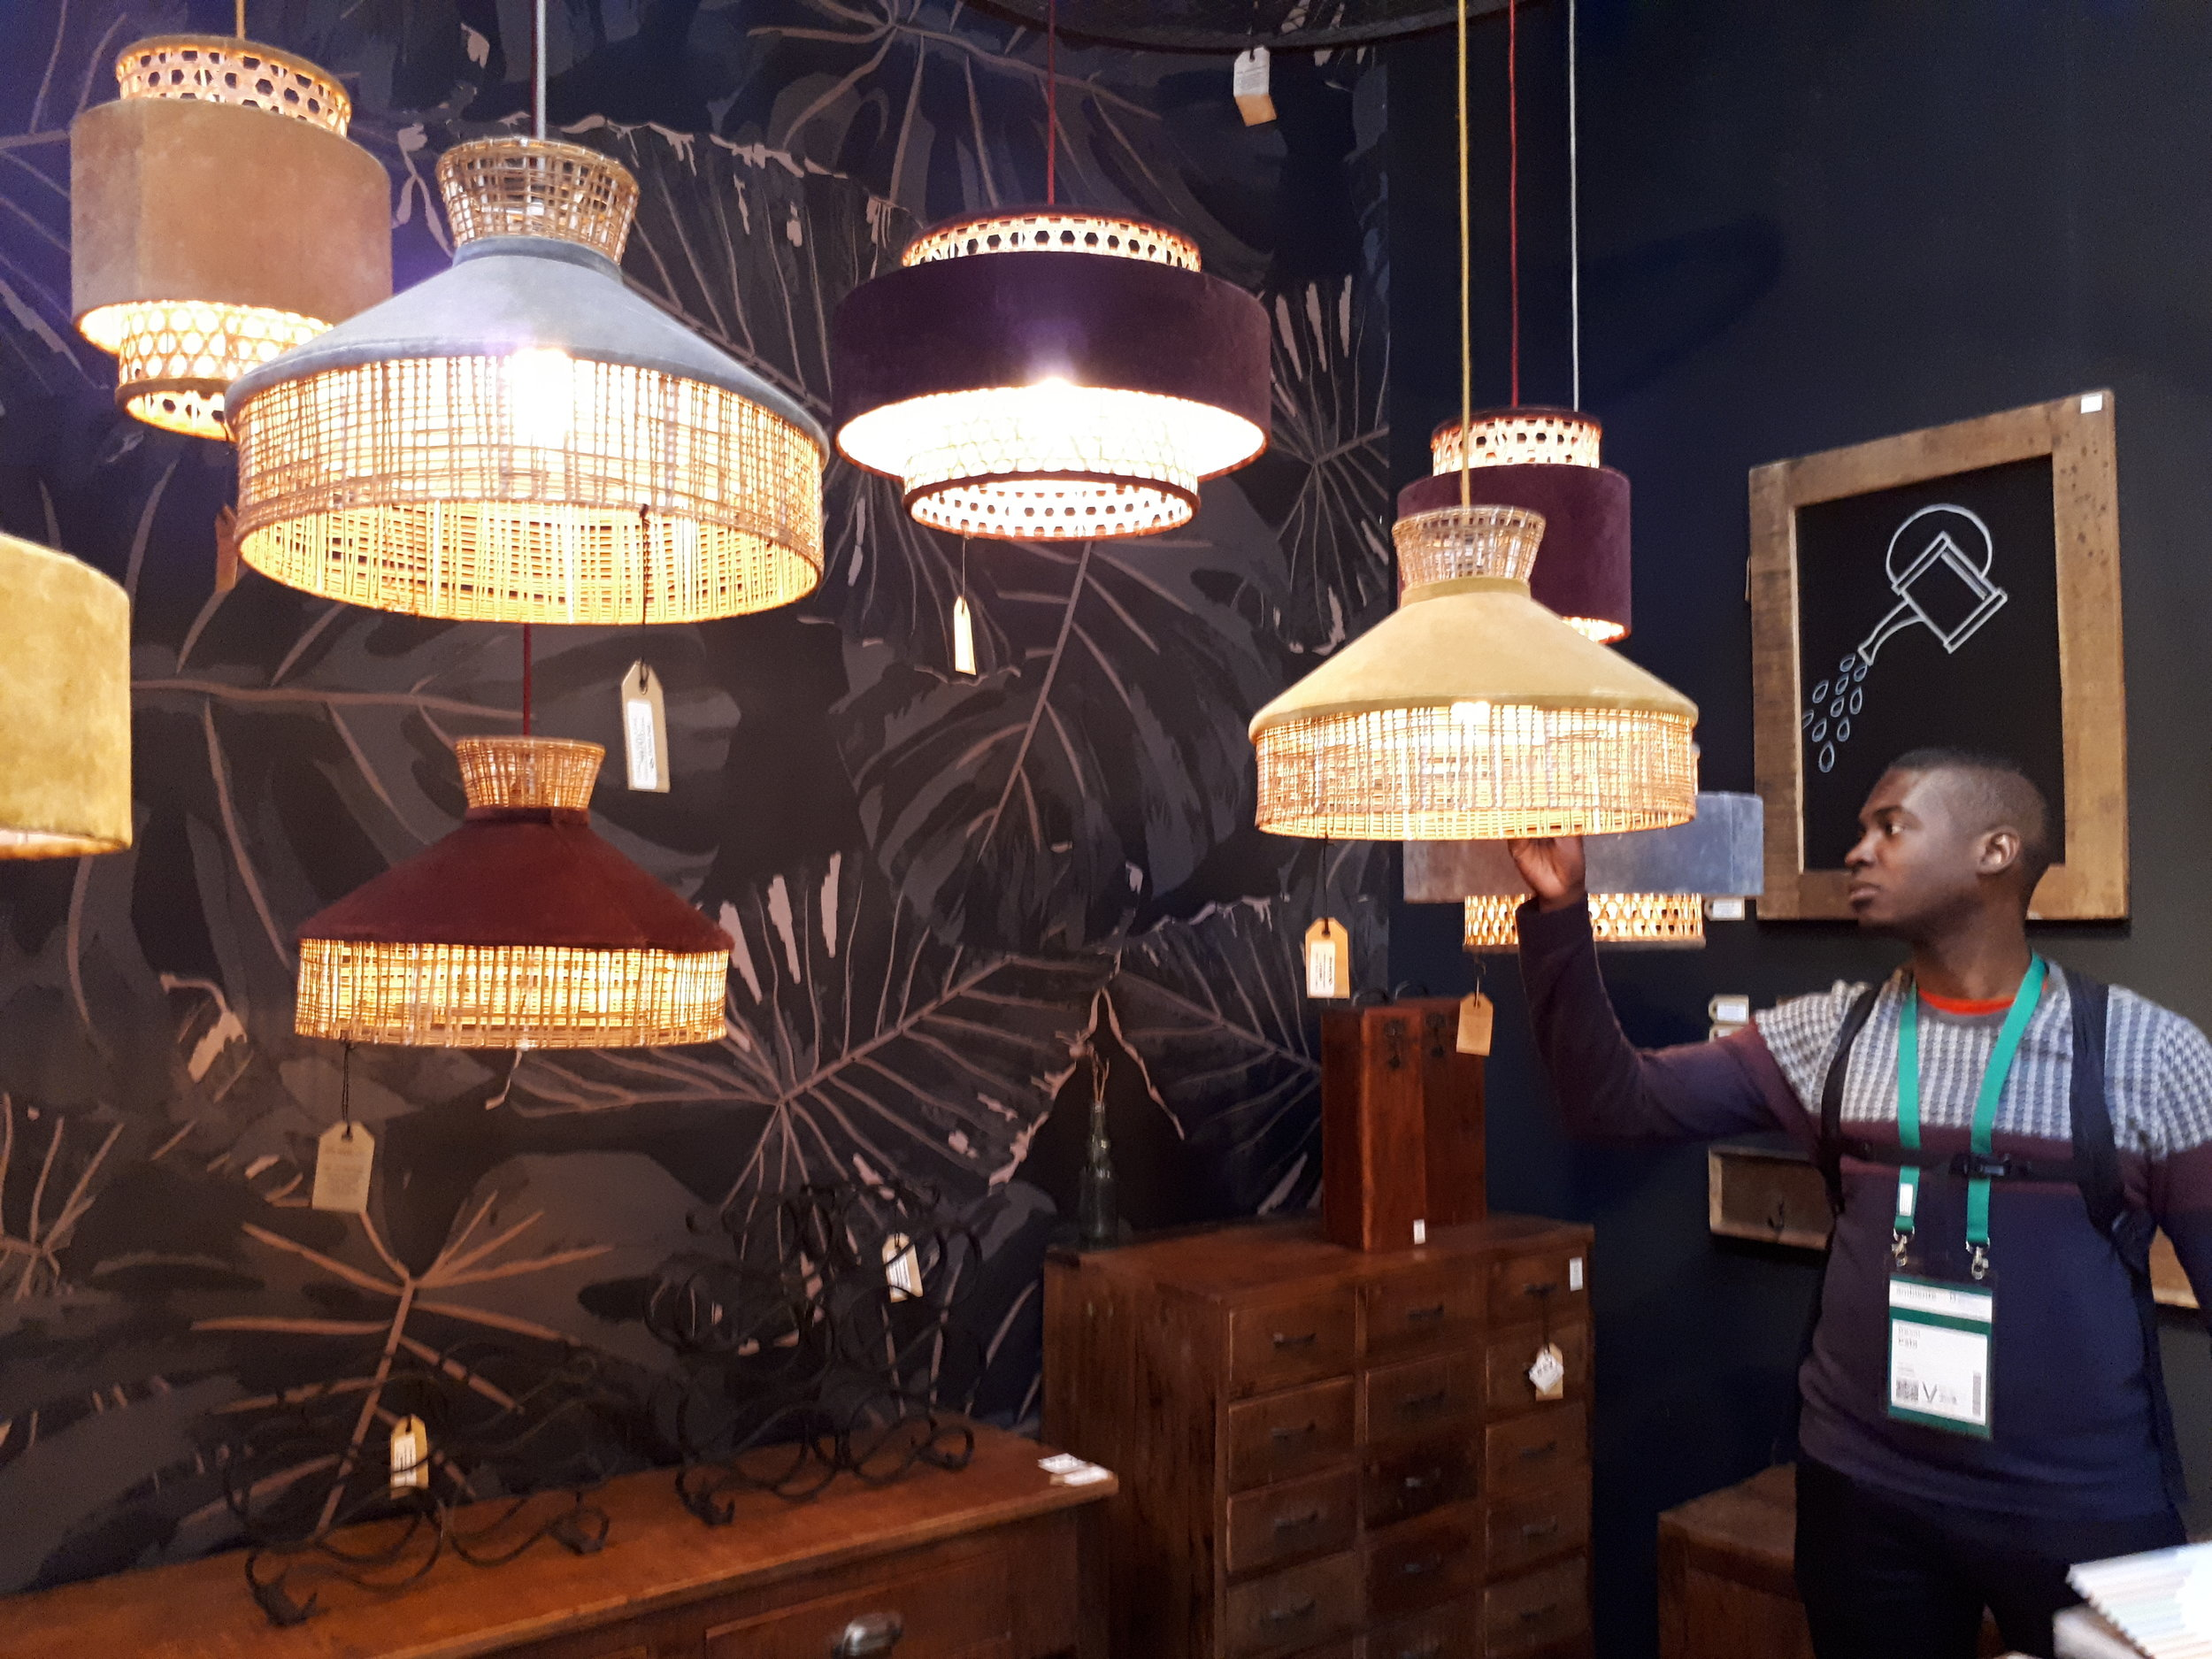 Sustainable and natural fibre-based lighting was a big highlight of the event.